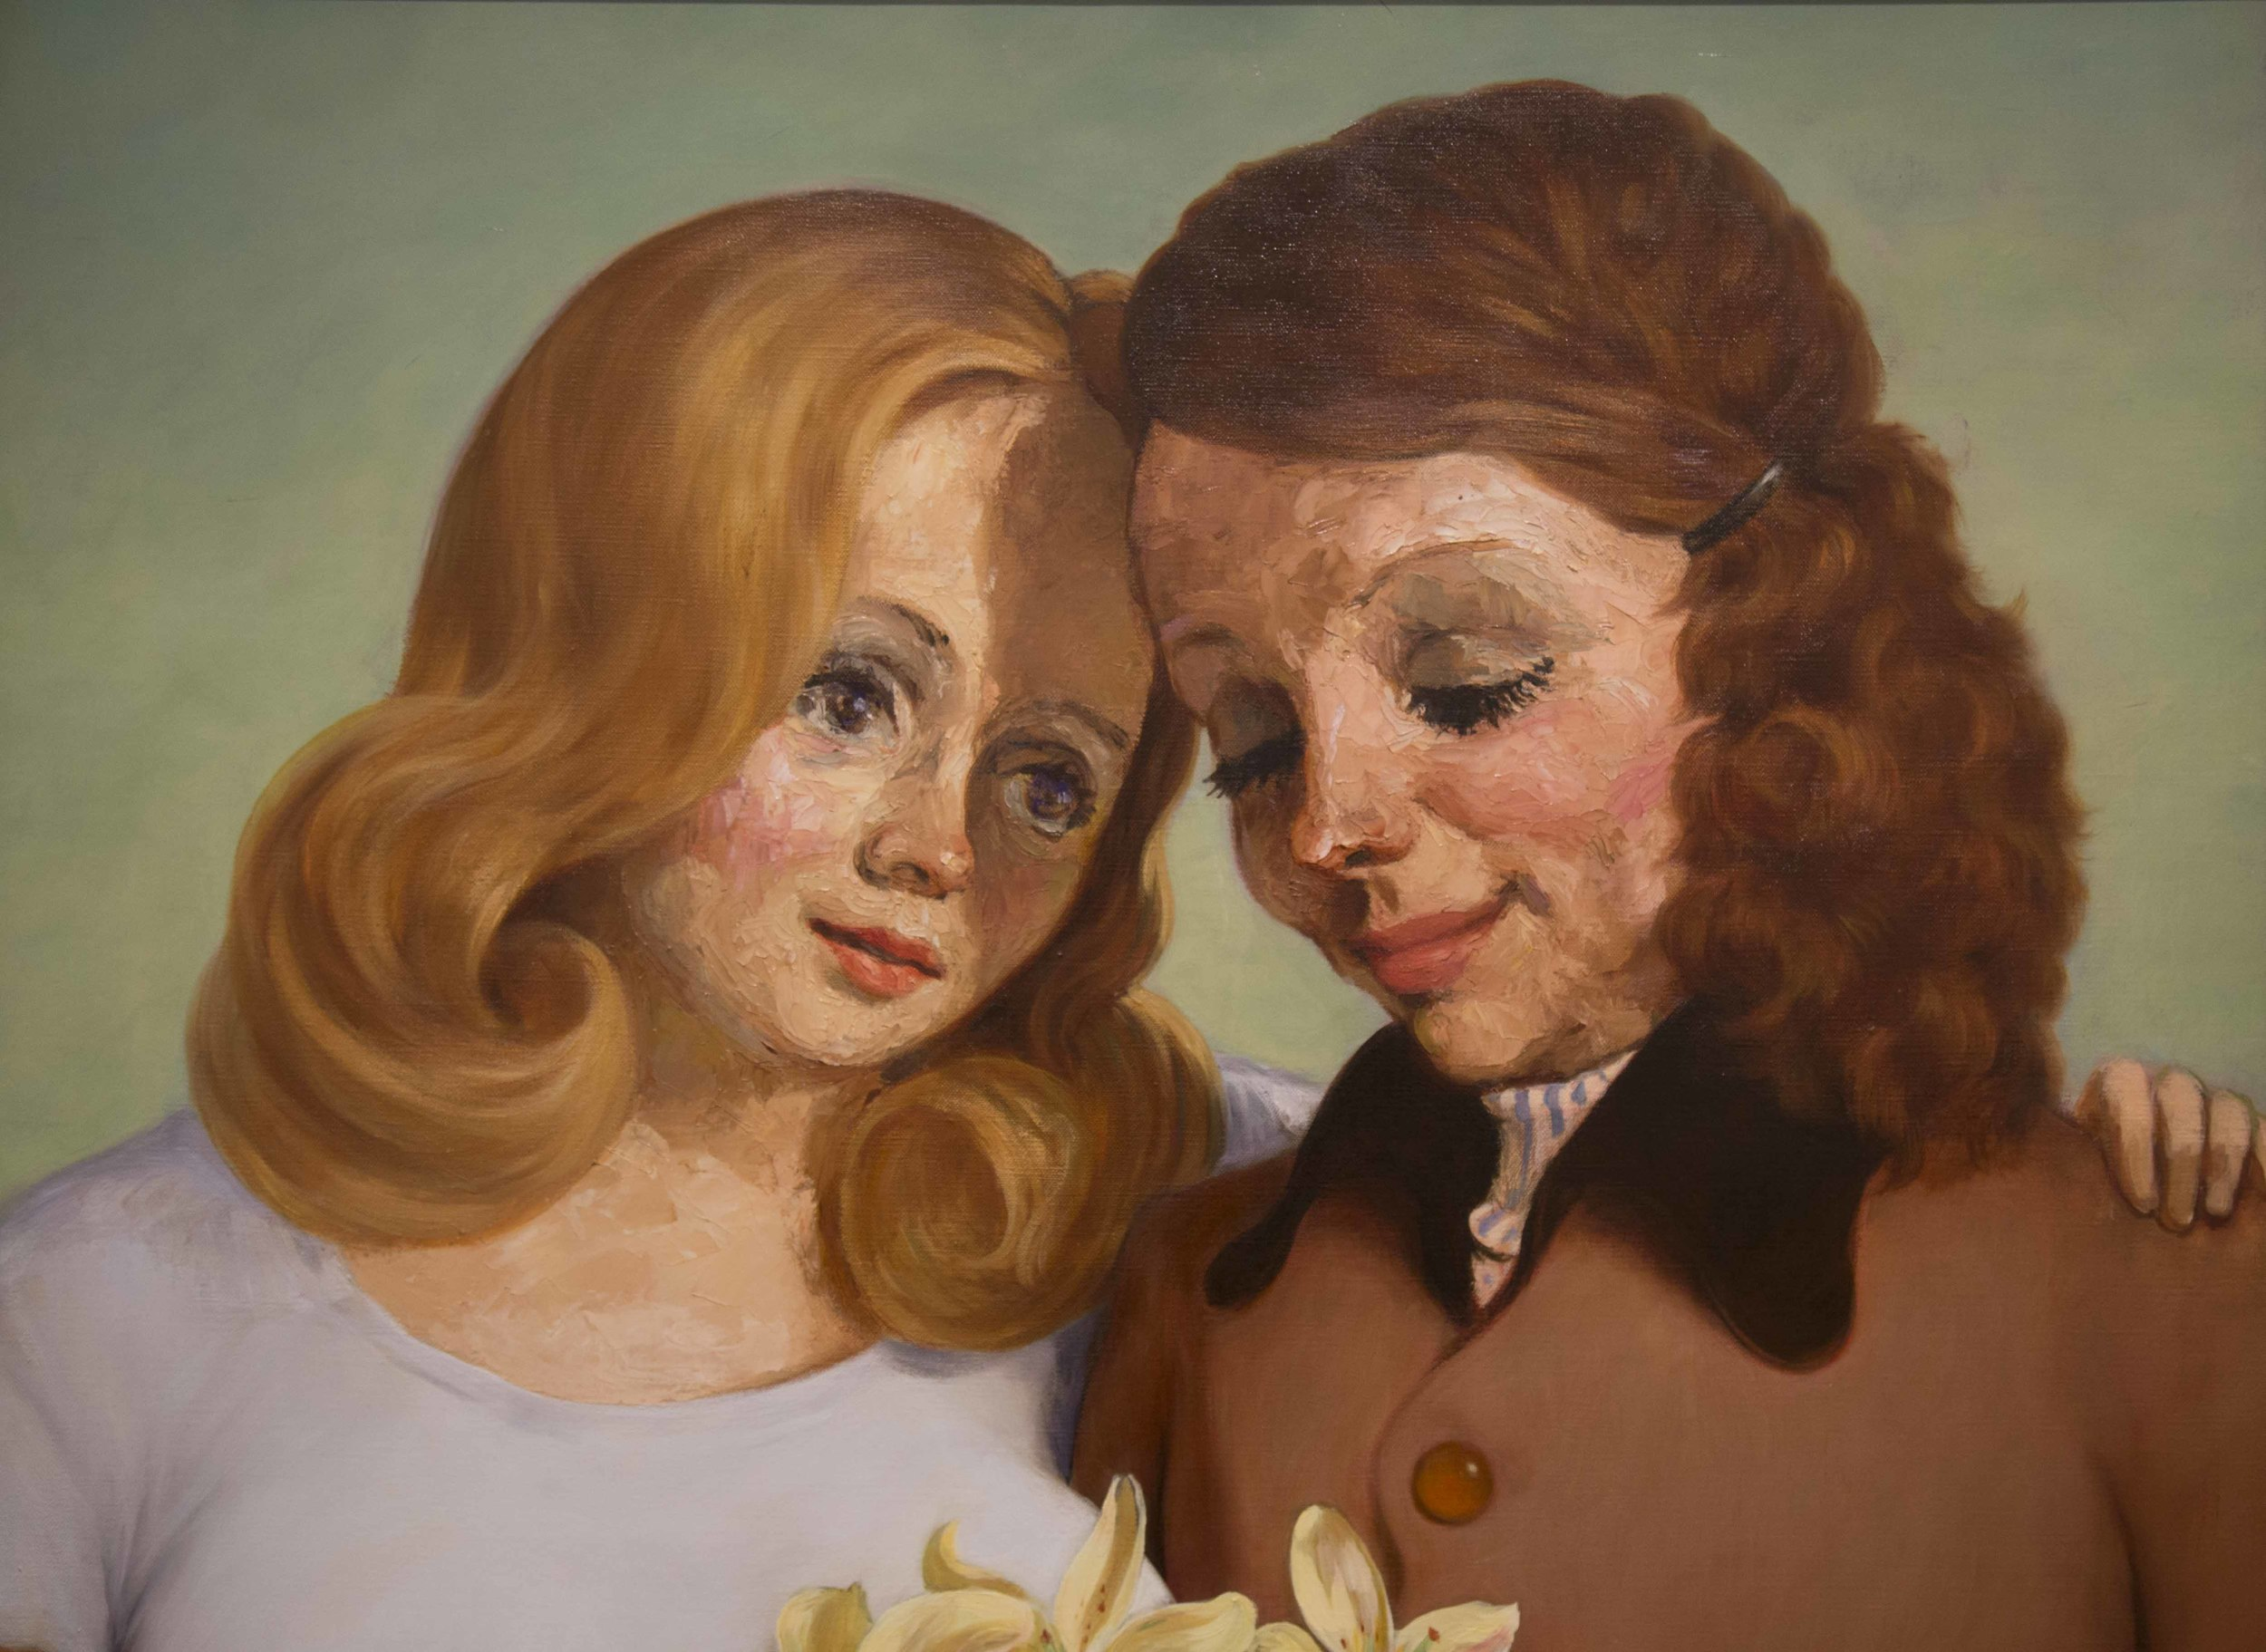 'Daughter and Mother' (1997) by John Currin